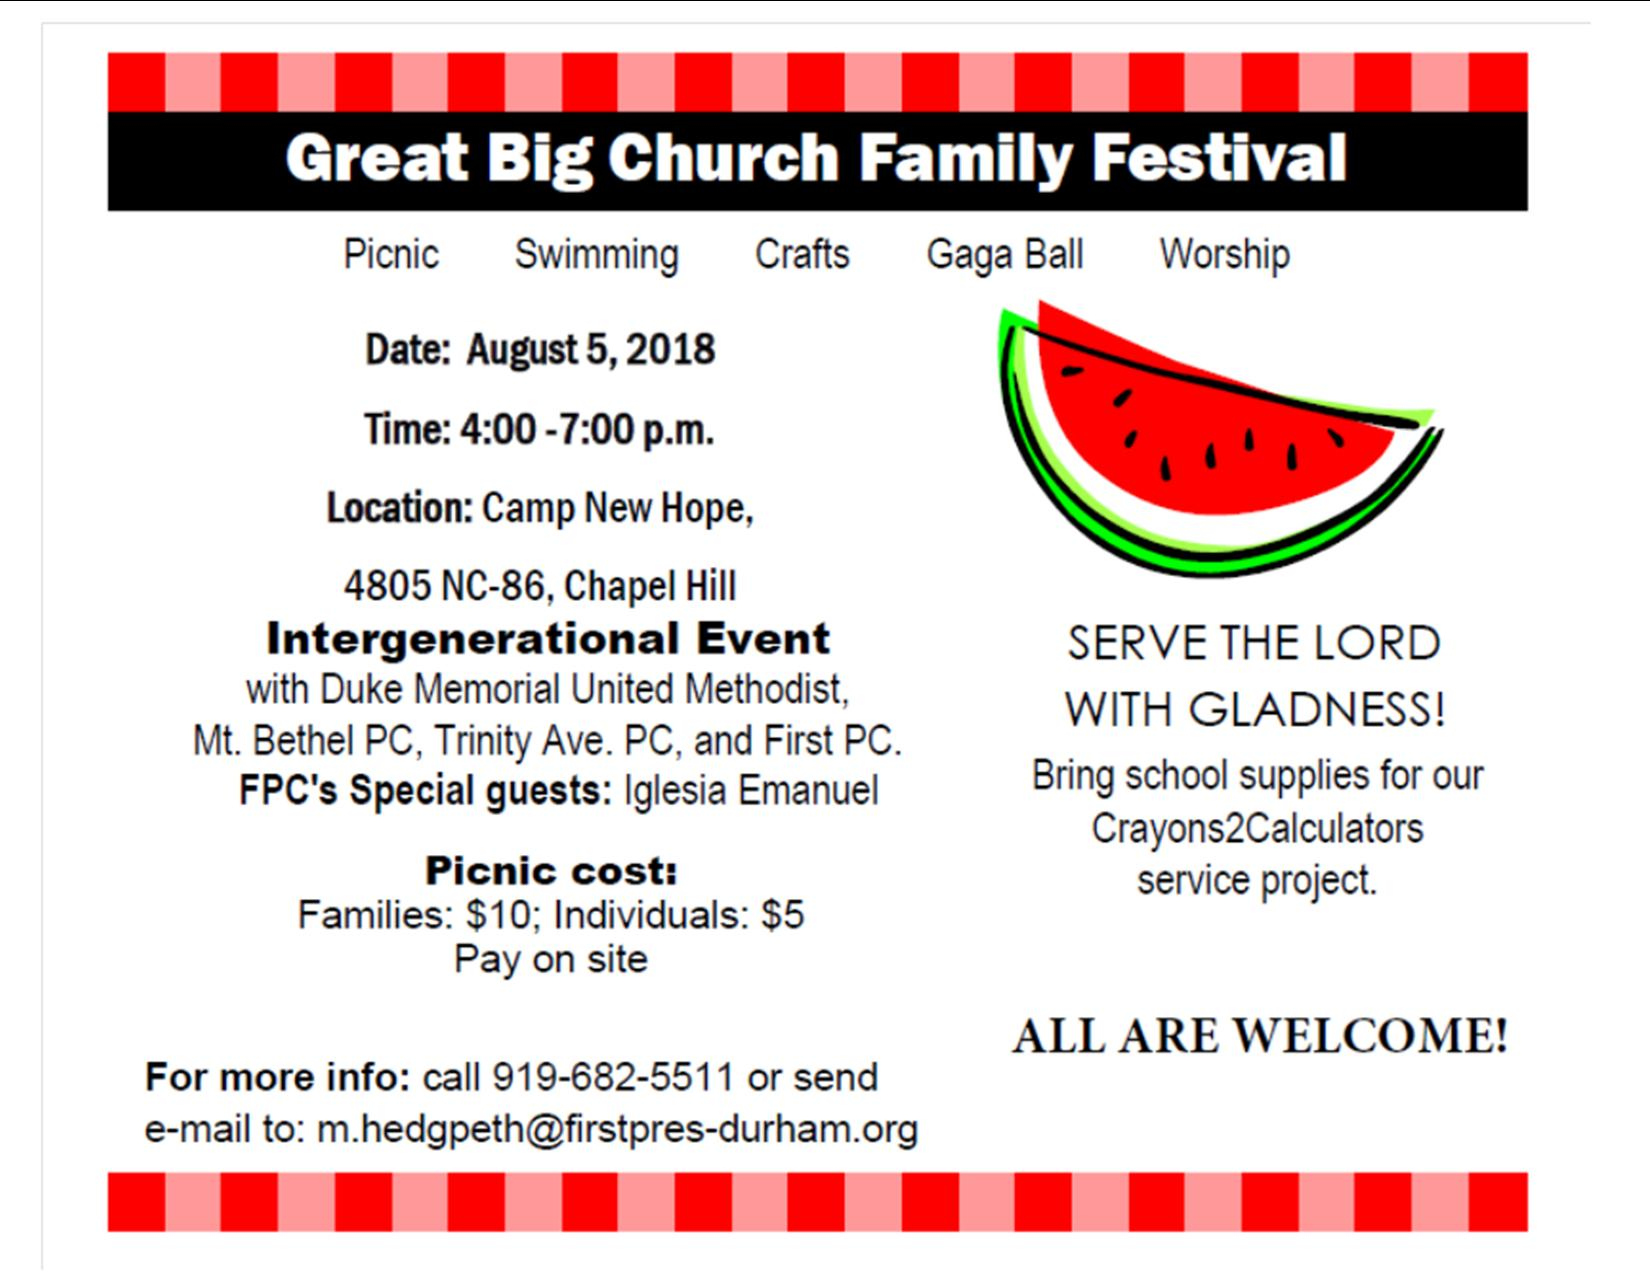 GBCFF 2018 – Serve the Lord With Gladness